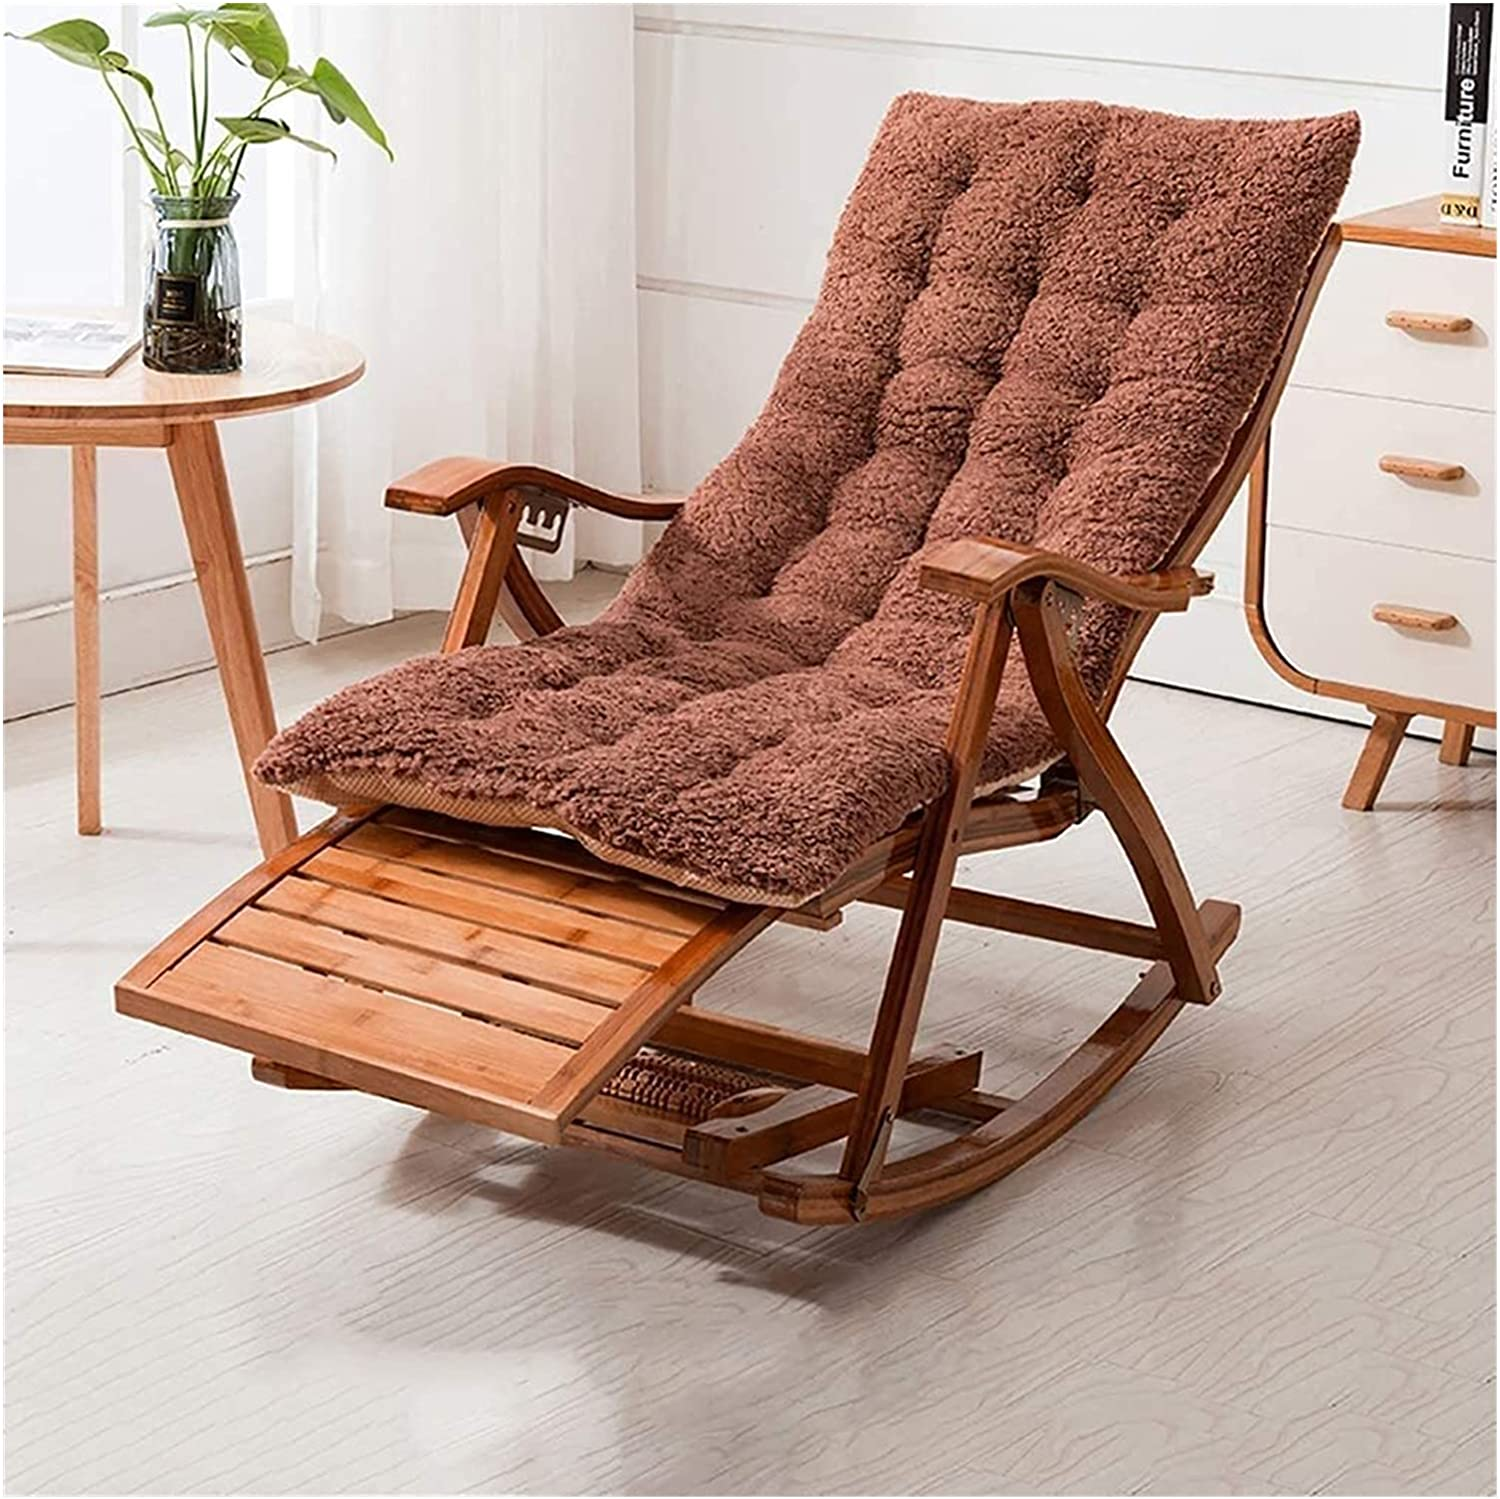 XUNMAIFLB Rocking Chair Outdoor Folding Multifunctional Online limited Max 88% OFF product Le